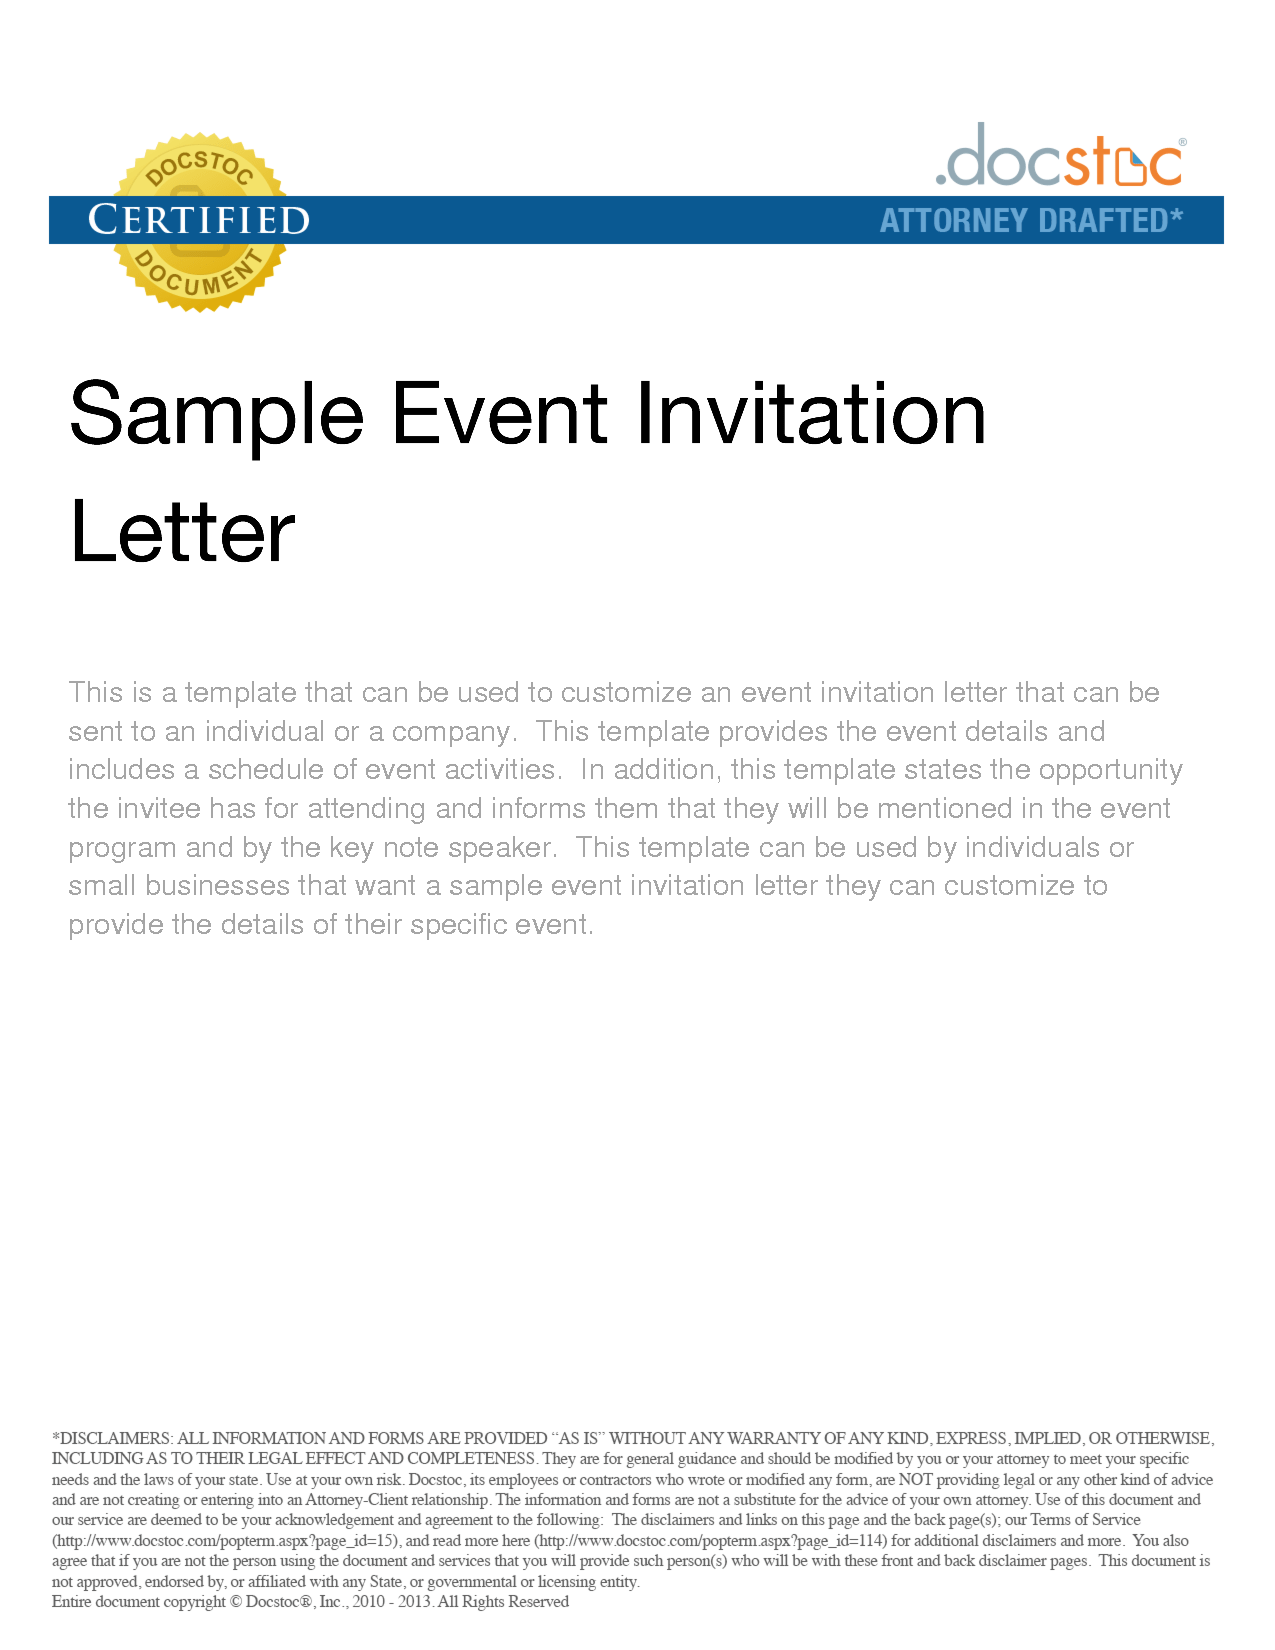 Sample Invitation Letter For Corporate Event – Formal Invitation Letter for Event